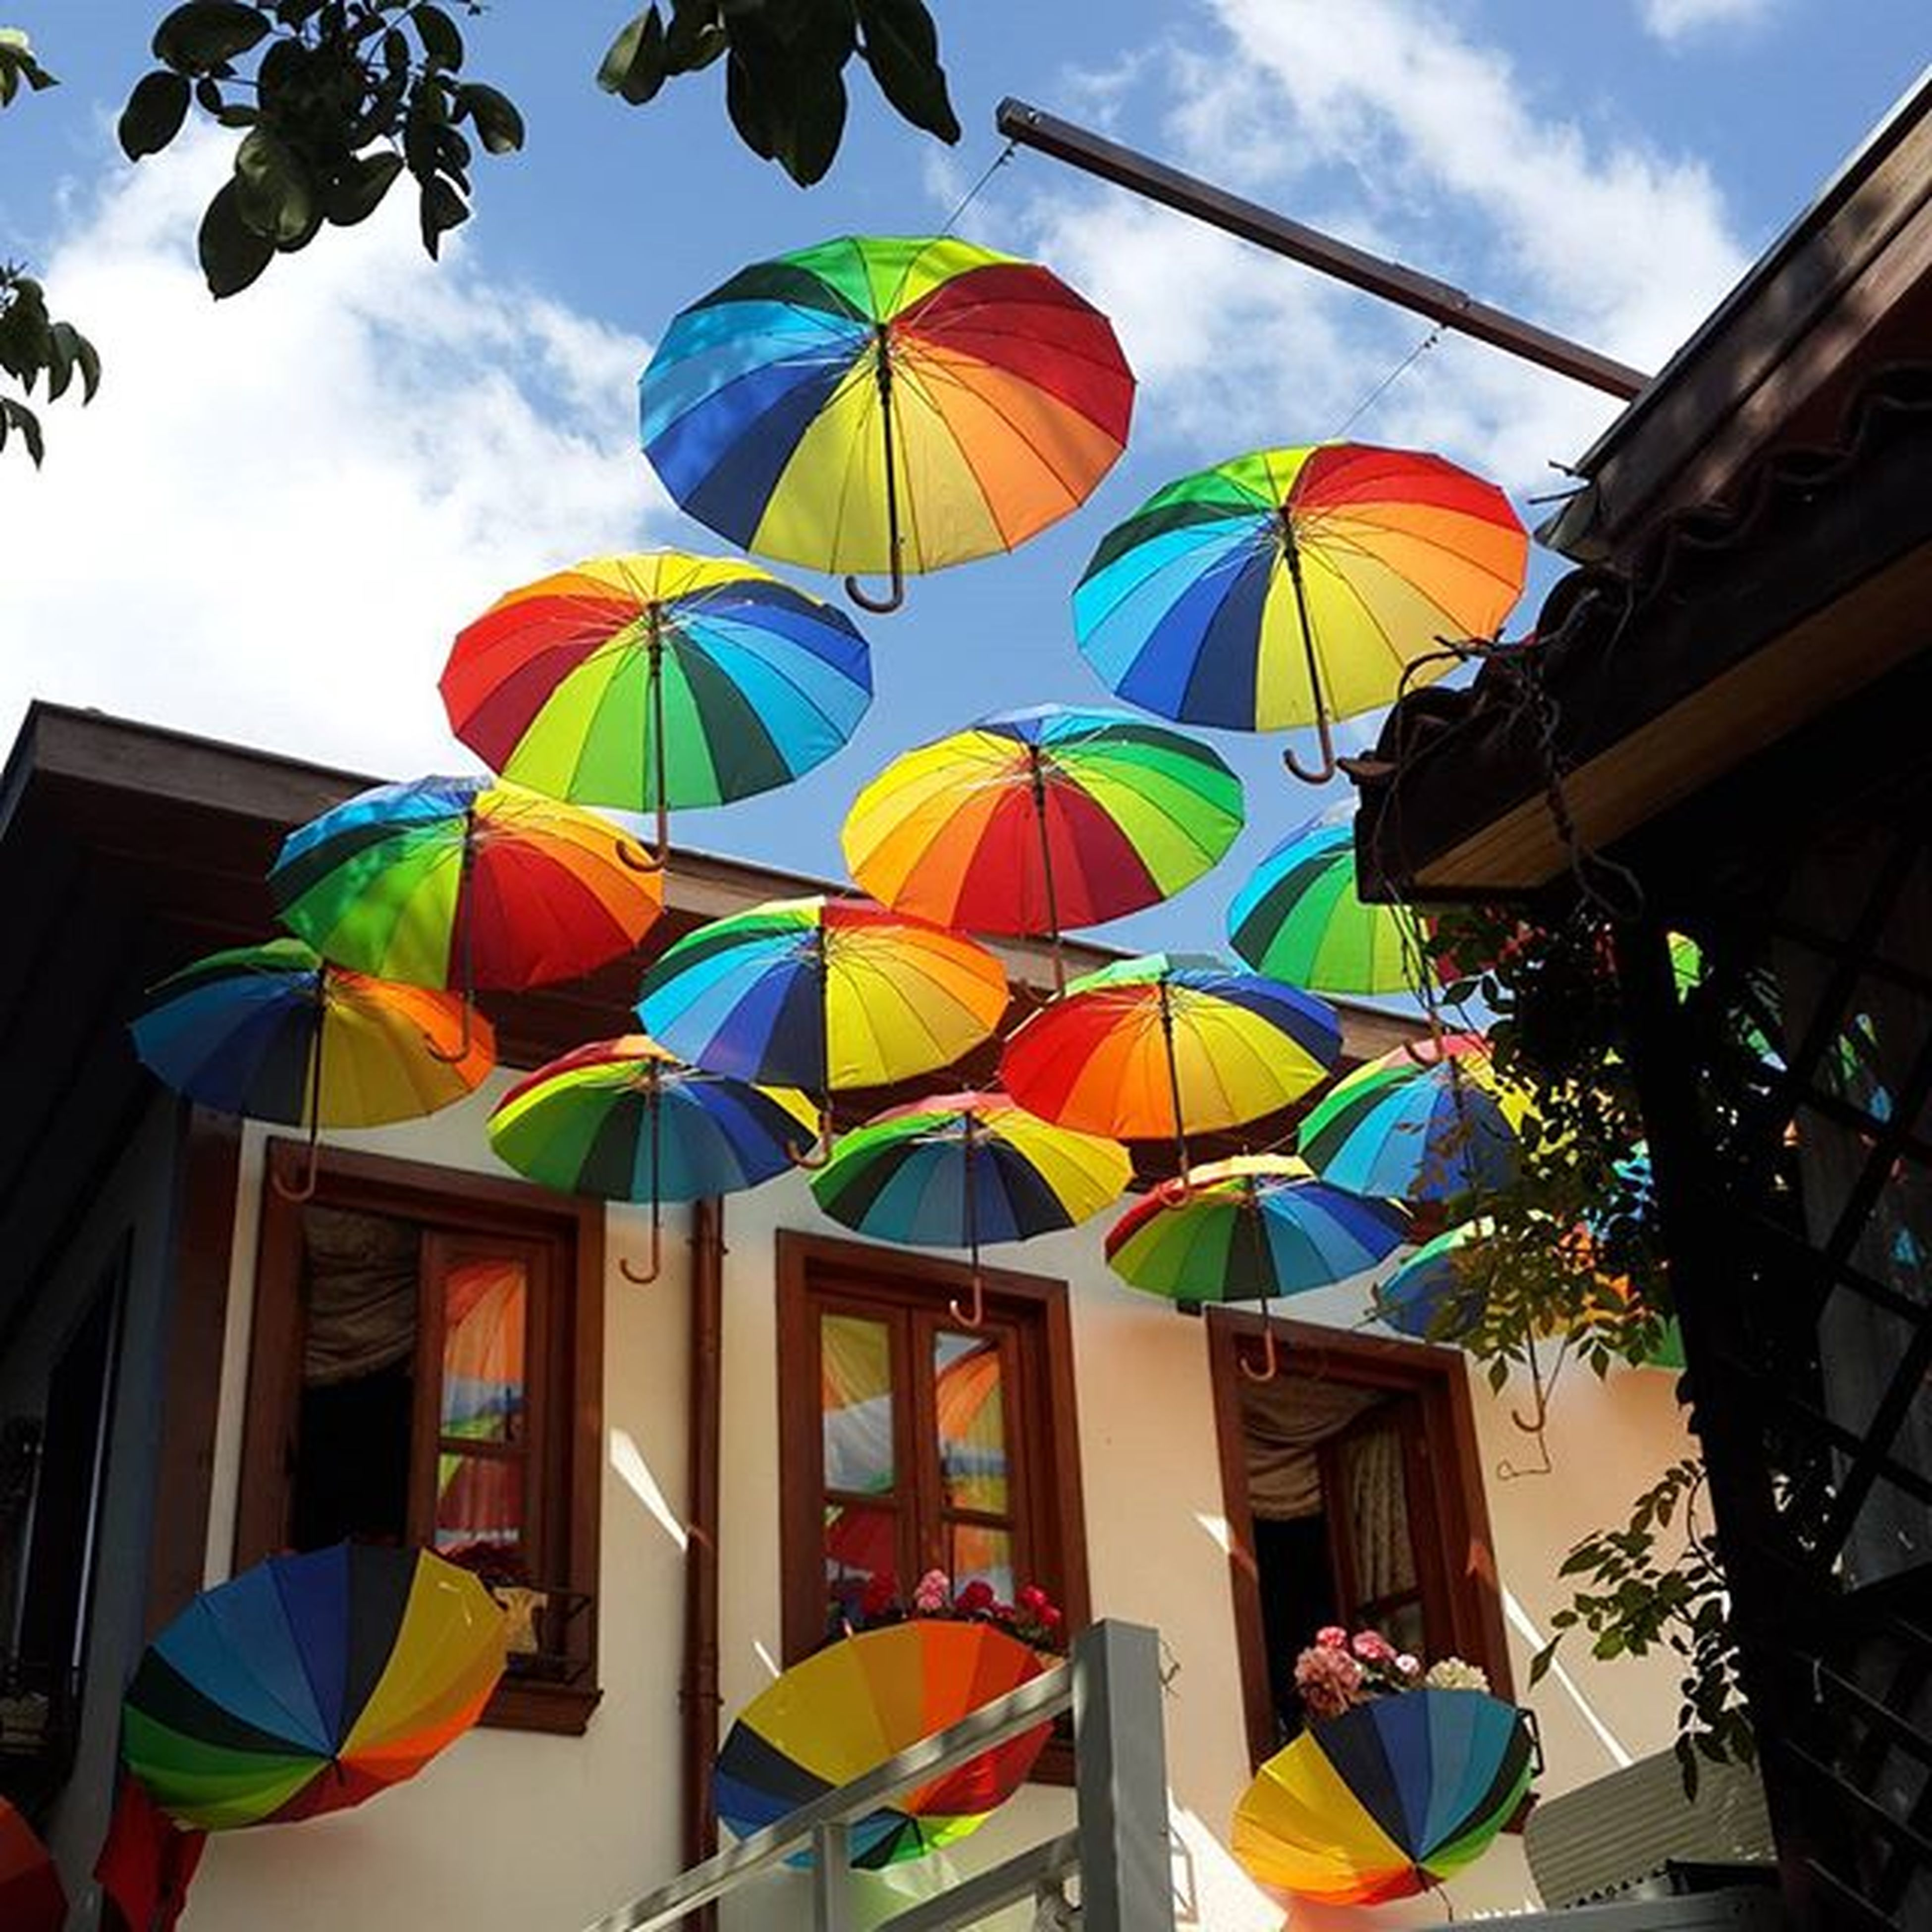 multi colored, low angle view, architecture, sky, built structure, building exterior, colorful, blue, hanging, cloud, cloud - sky, in a row, variation, house, day, yellow, no people, outdoors, window, umbrella